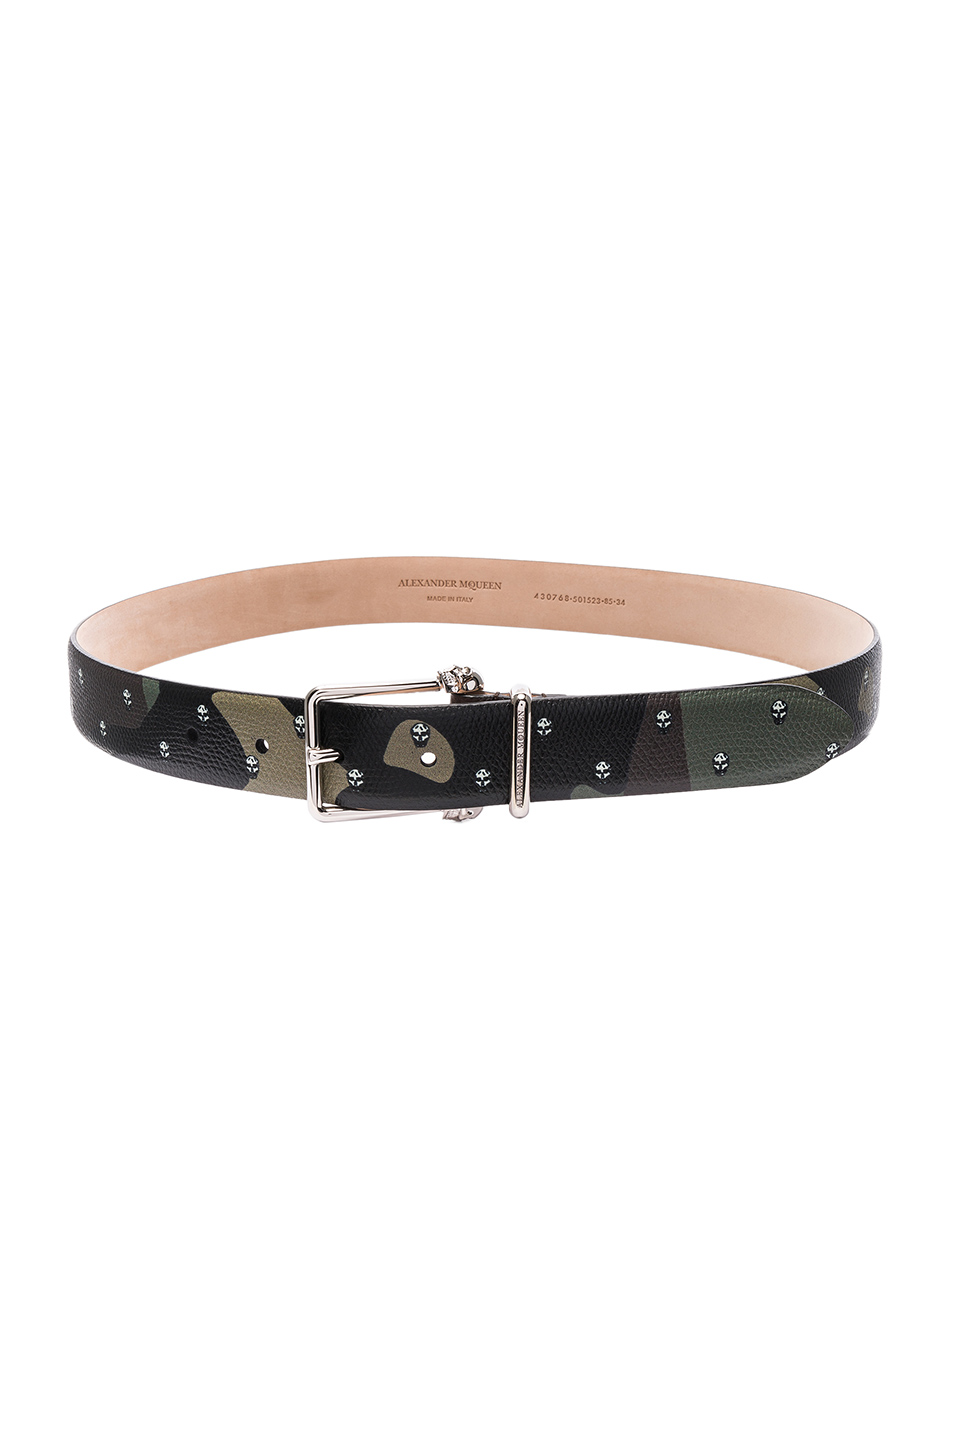 Alexander McQueen Buckle Skull Belt in Green